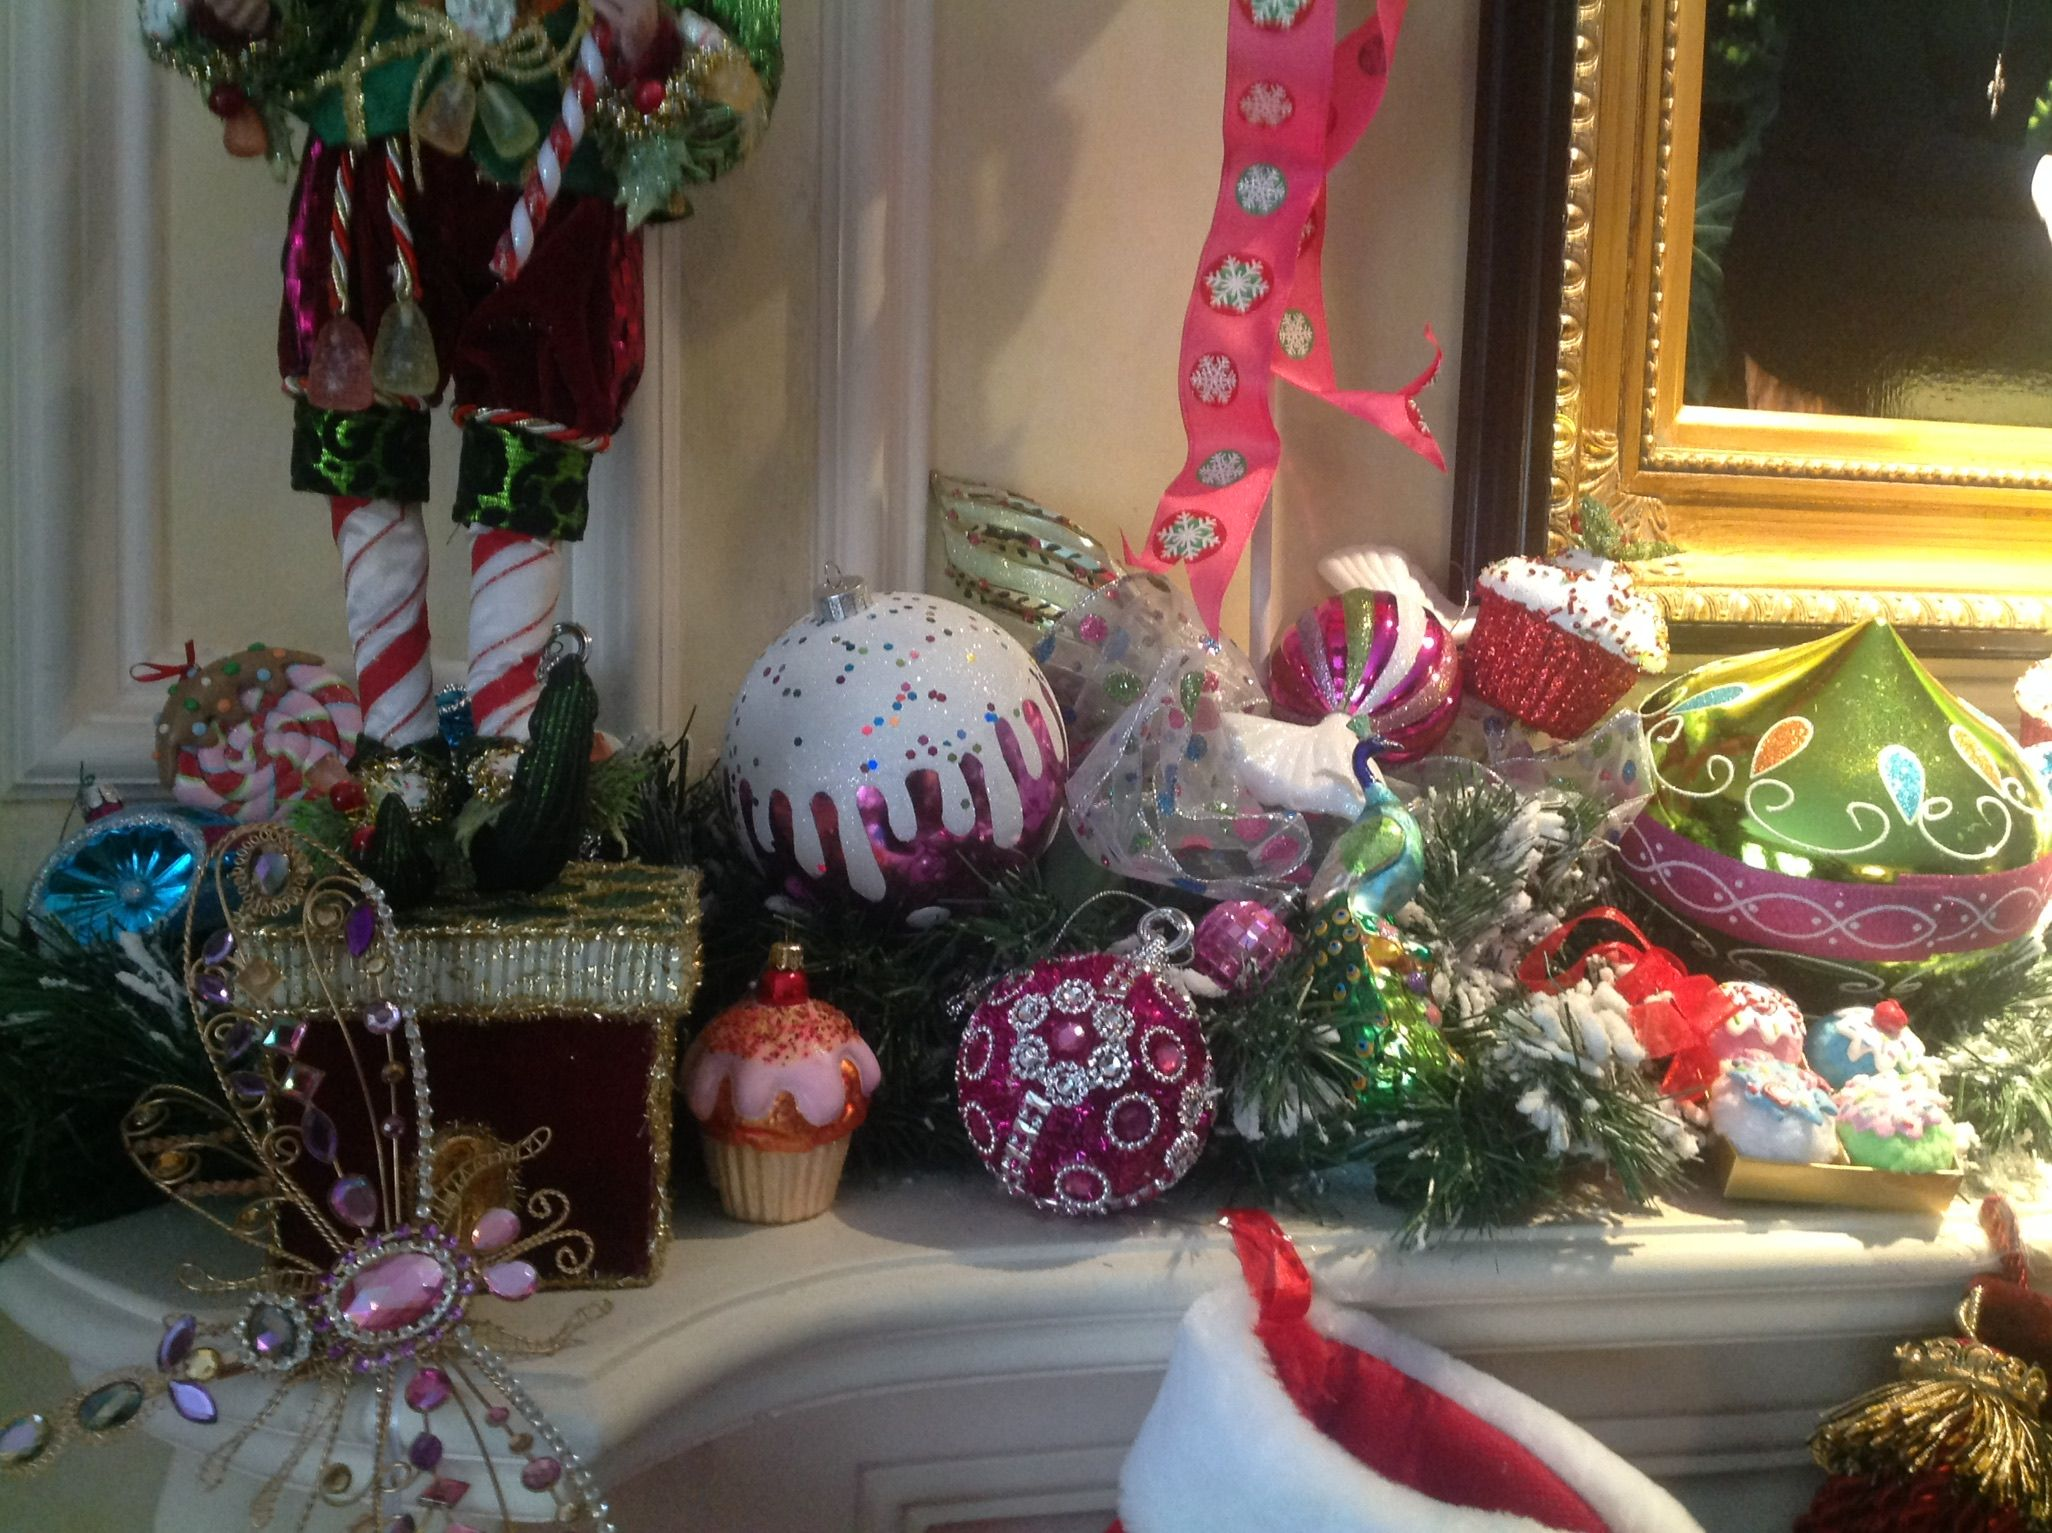 Christmas mantle decorations, Mark Roberts stocking holder, ornaments, jewels.